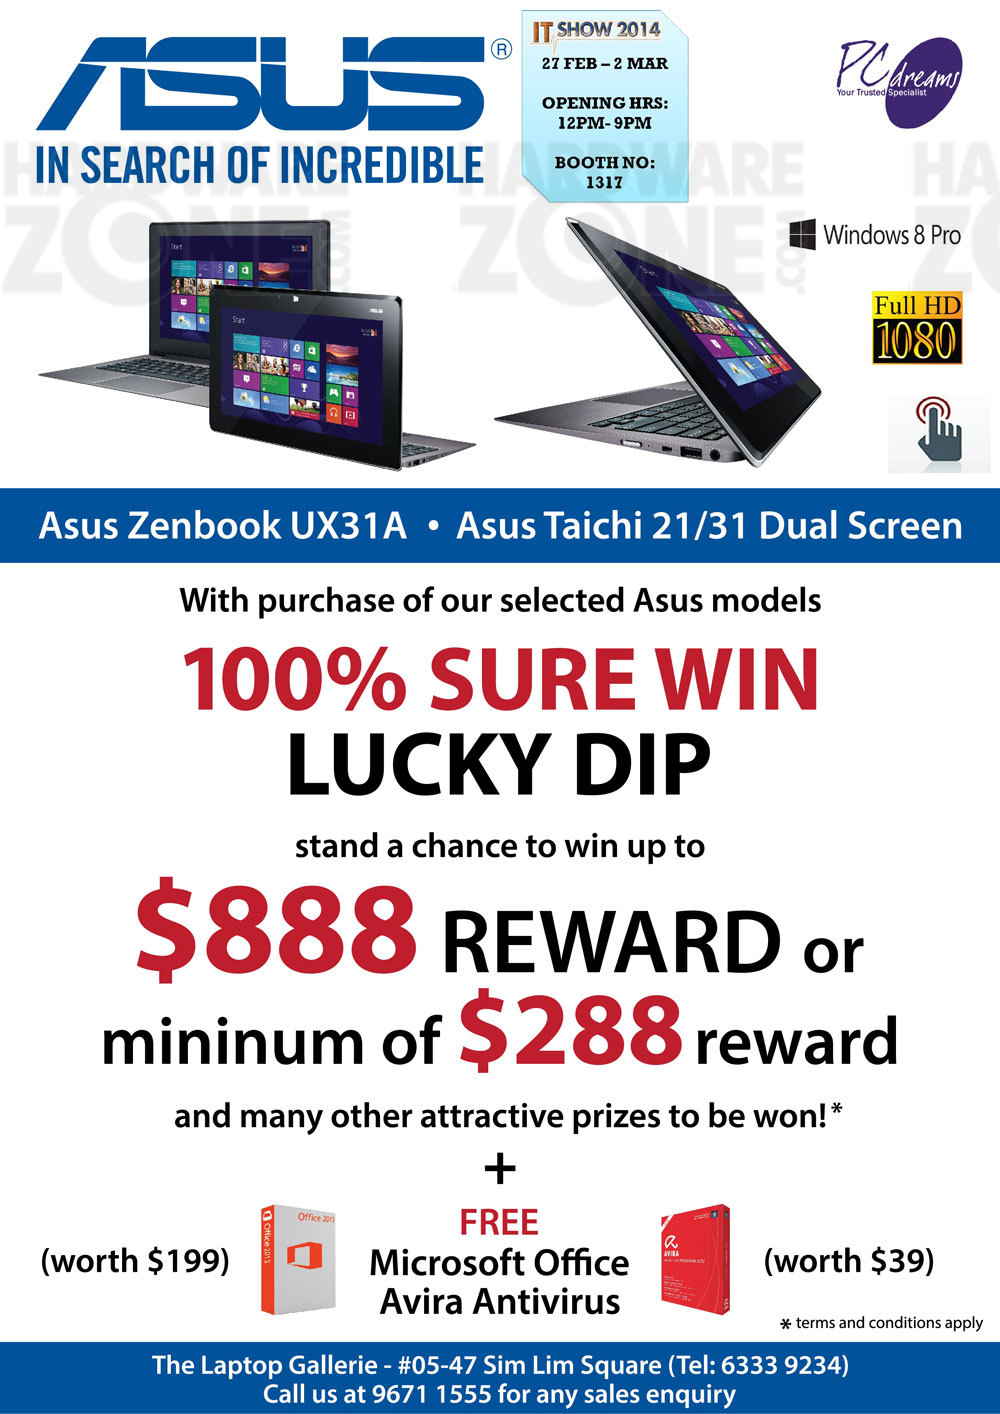 ASUS notebooks - PC Dreams offer